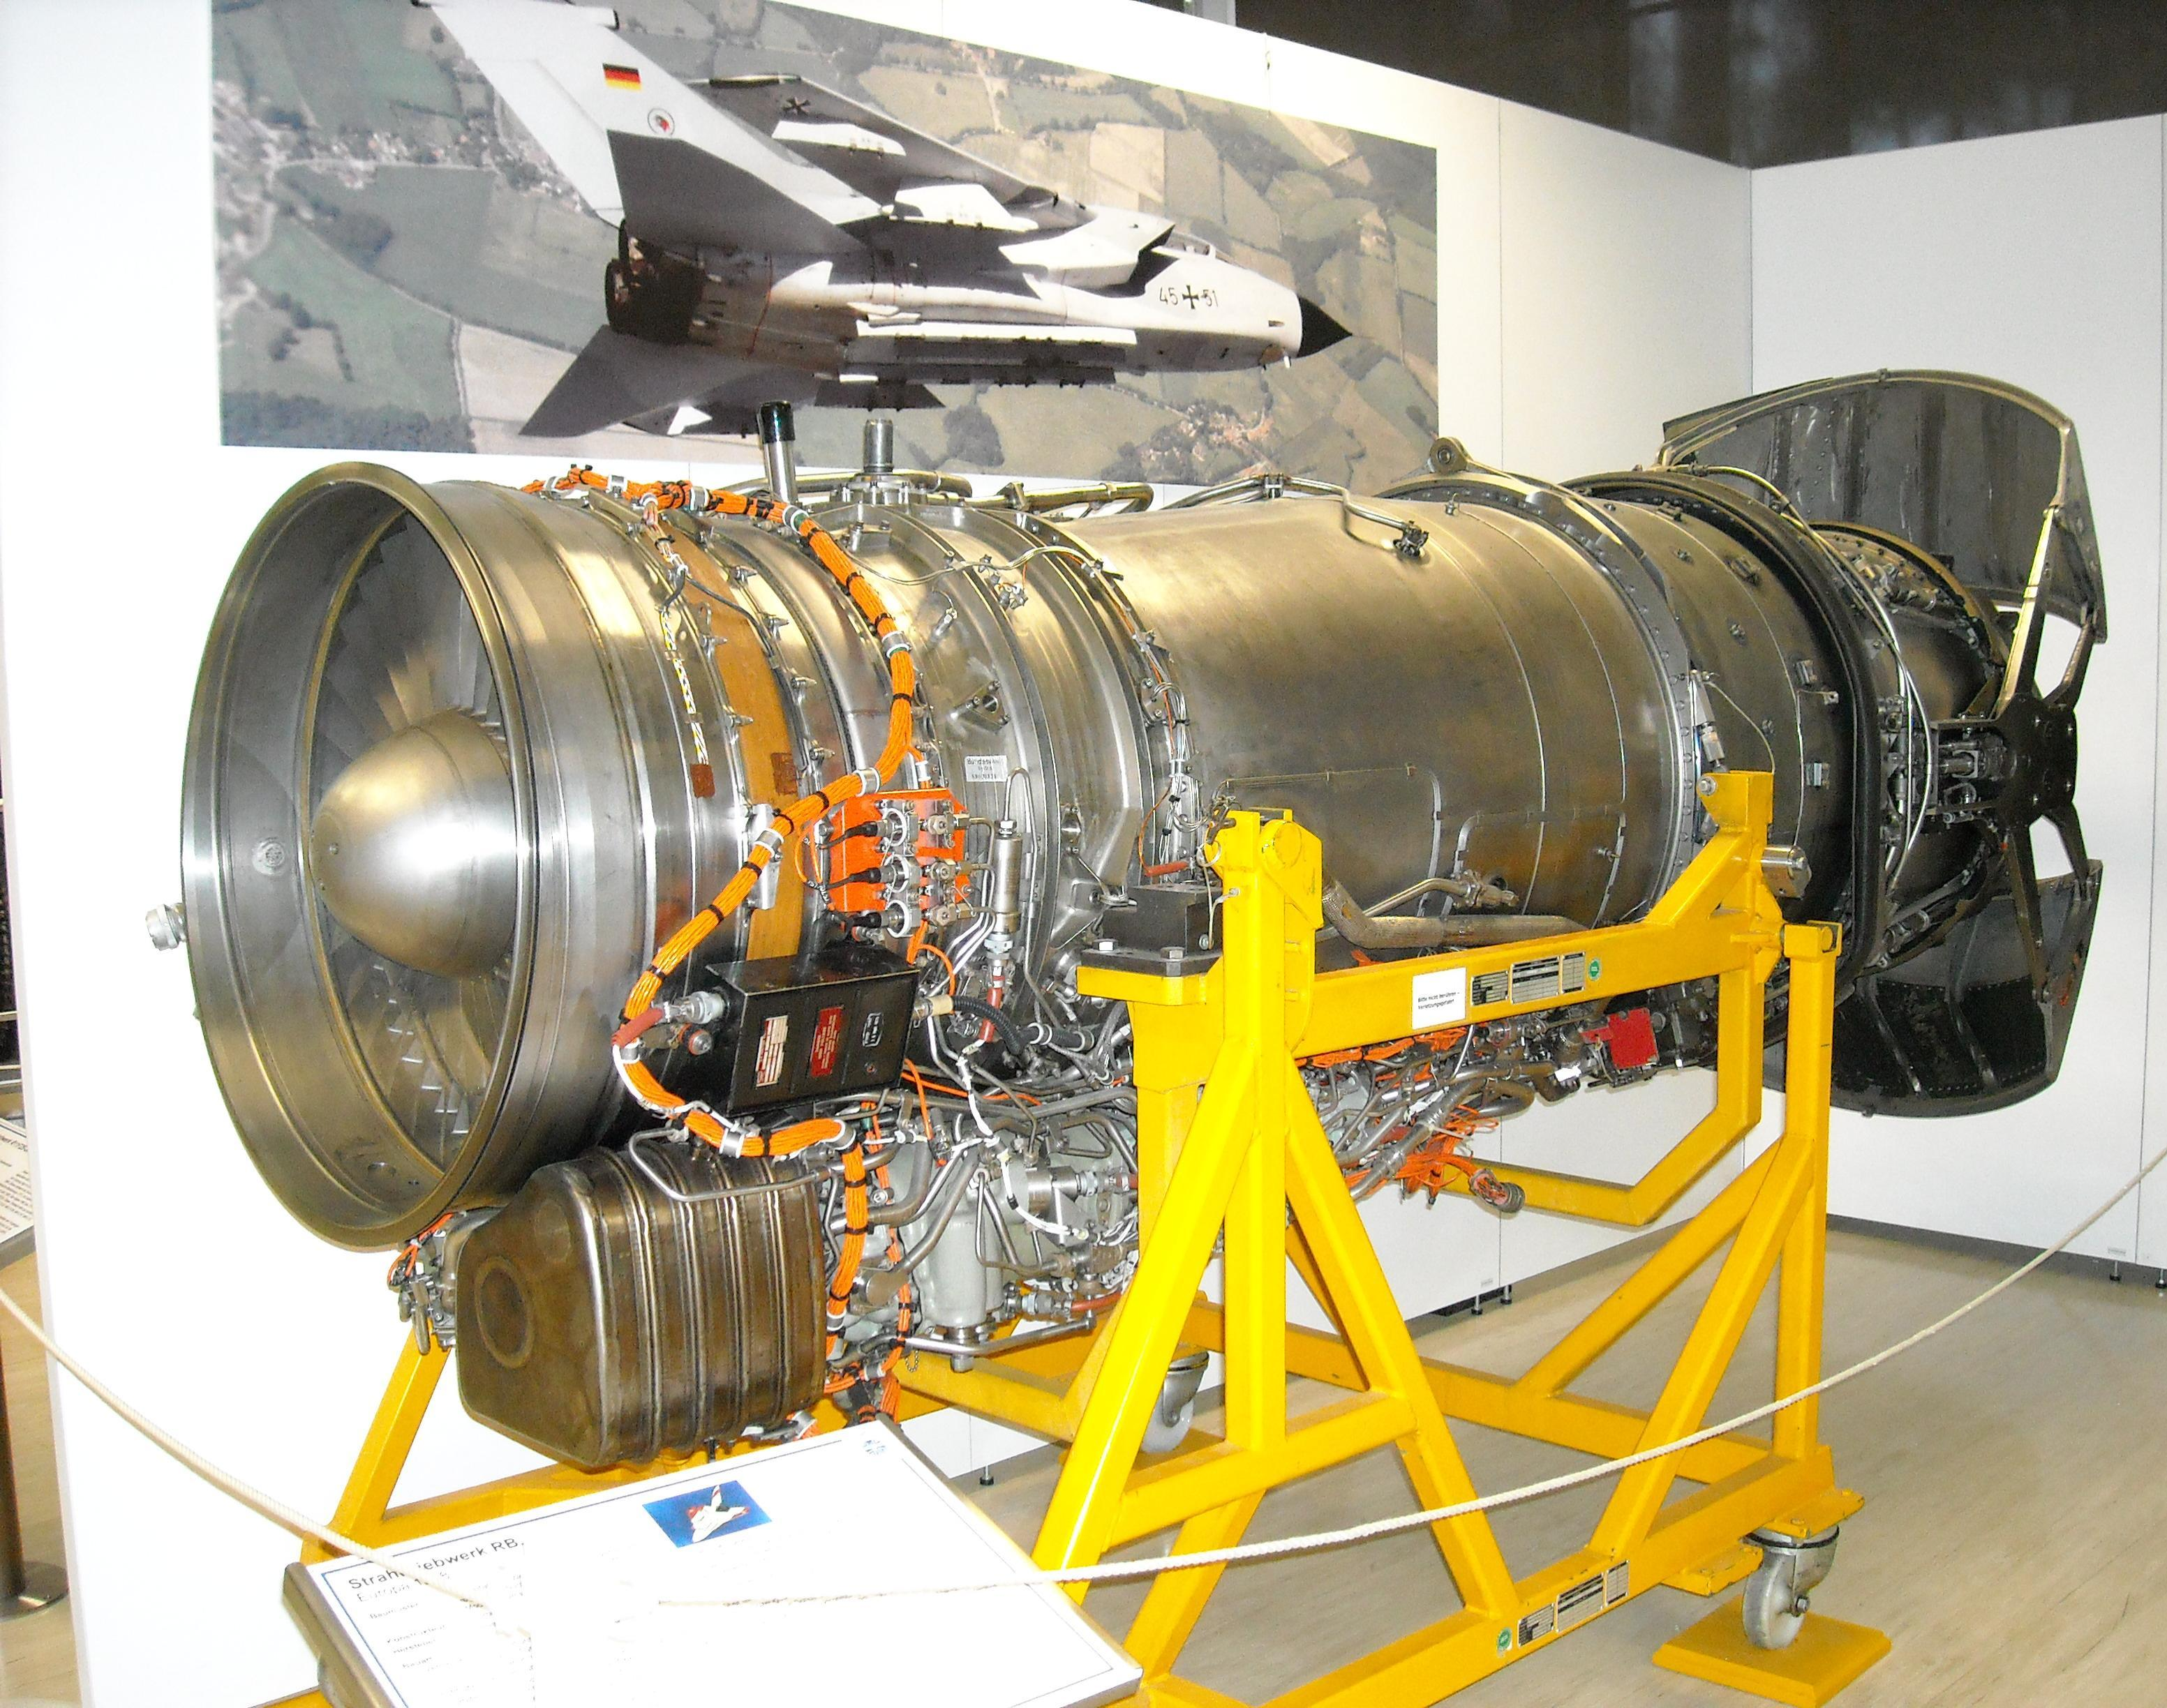 File:Turbo-Union RB199 turbofan engine jpg - Wikimedia Commons